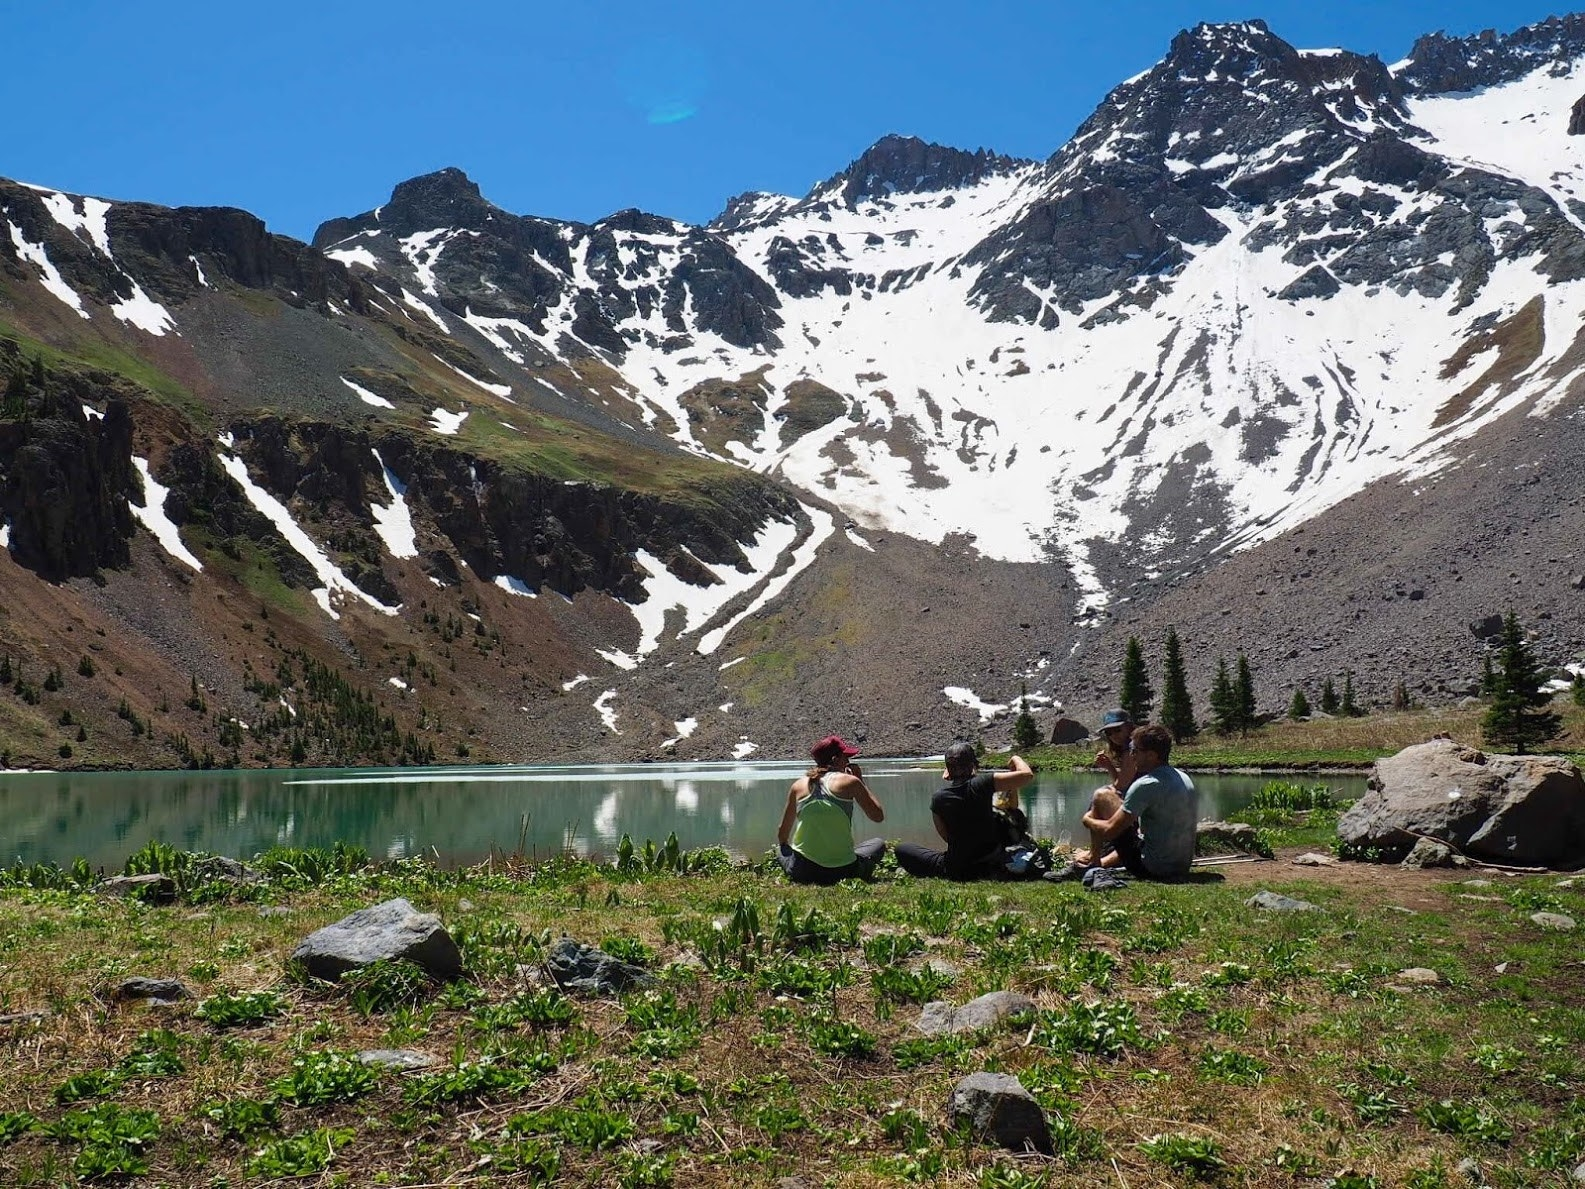 group of people sitting by a lake with a stunning snow-capped mountain in the background